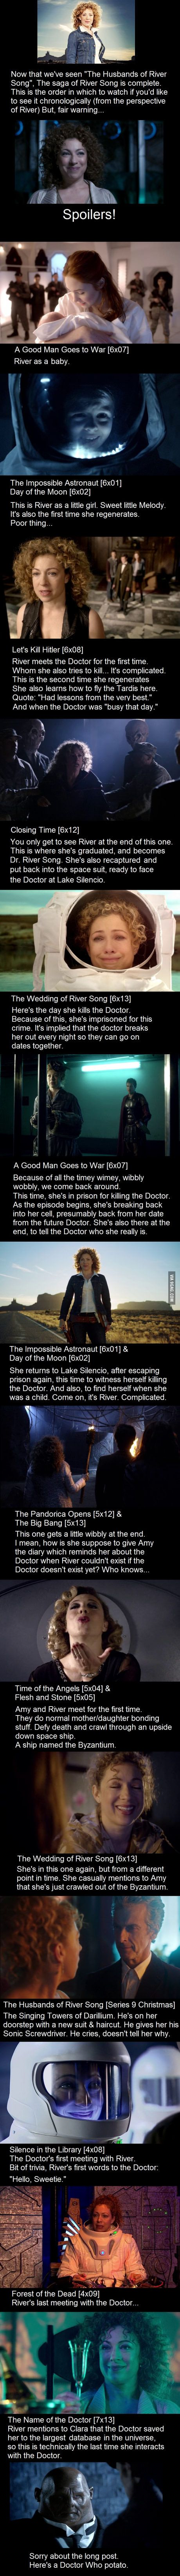 River Song's Timeline. Watch in this order if you'd like to see River's journey in Doctor Who